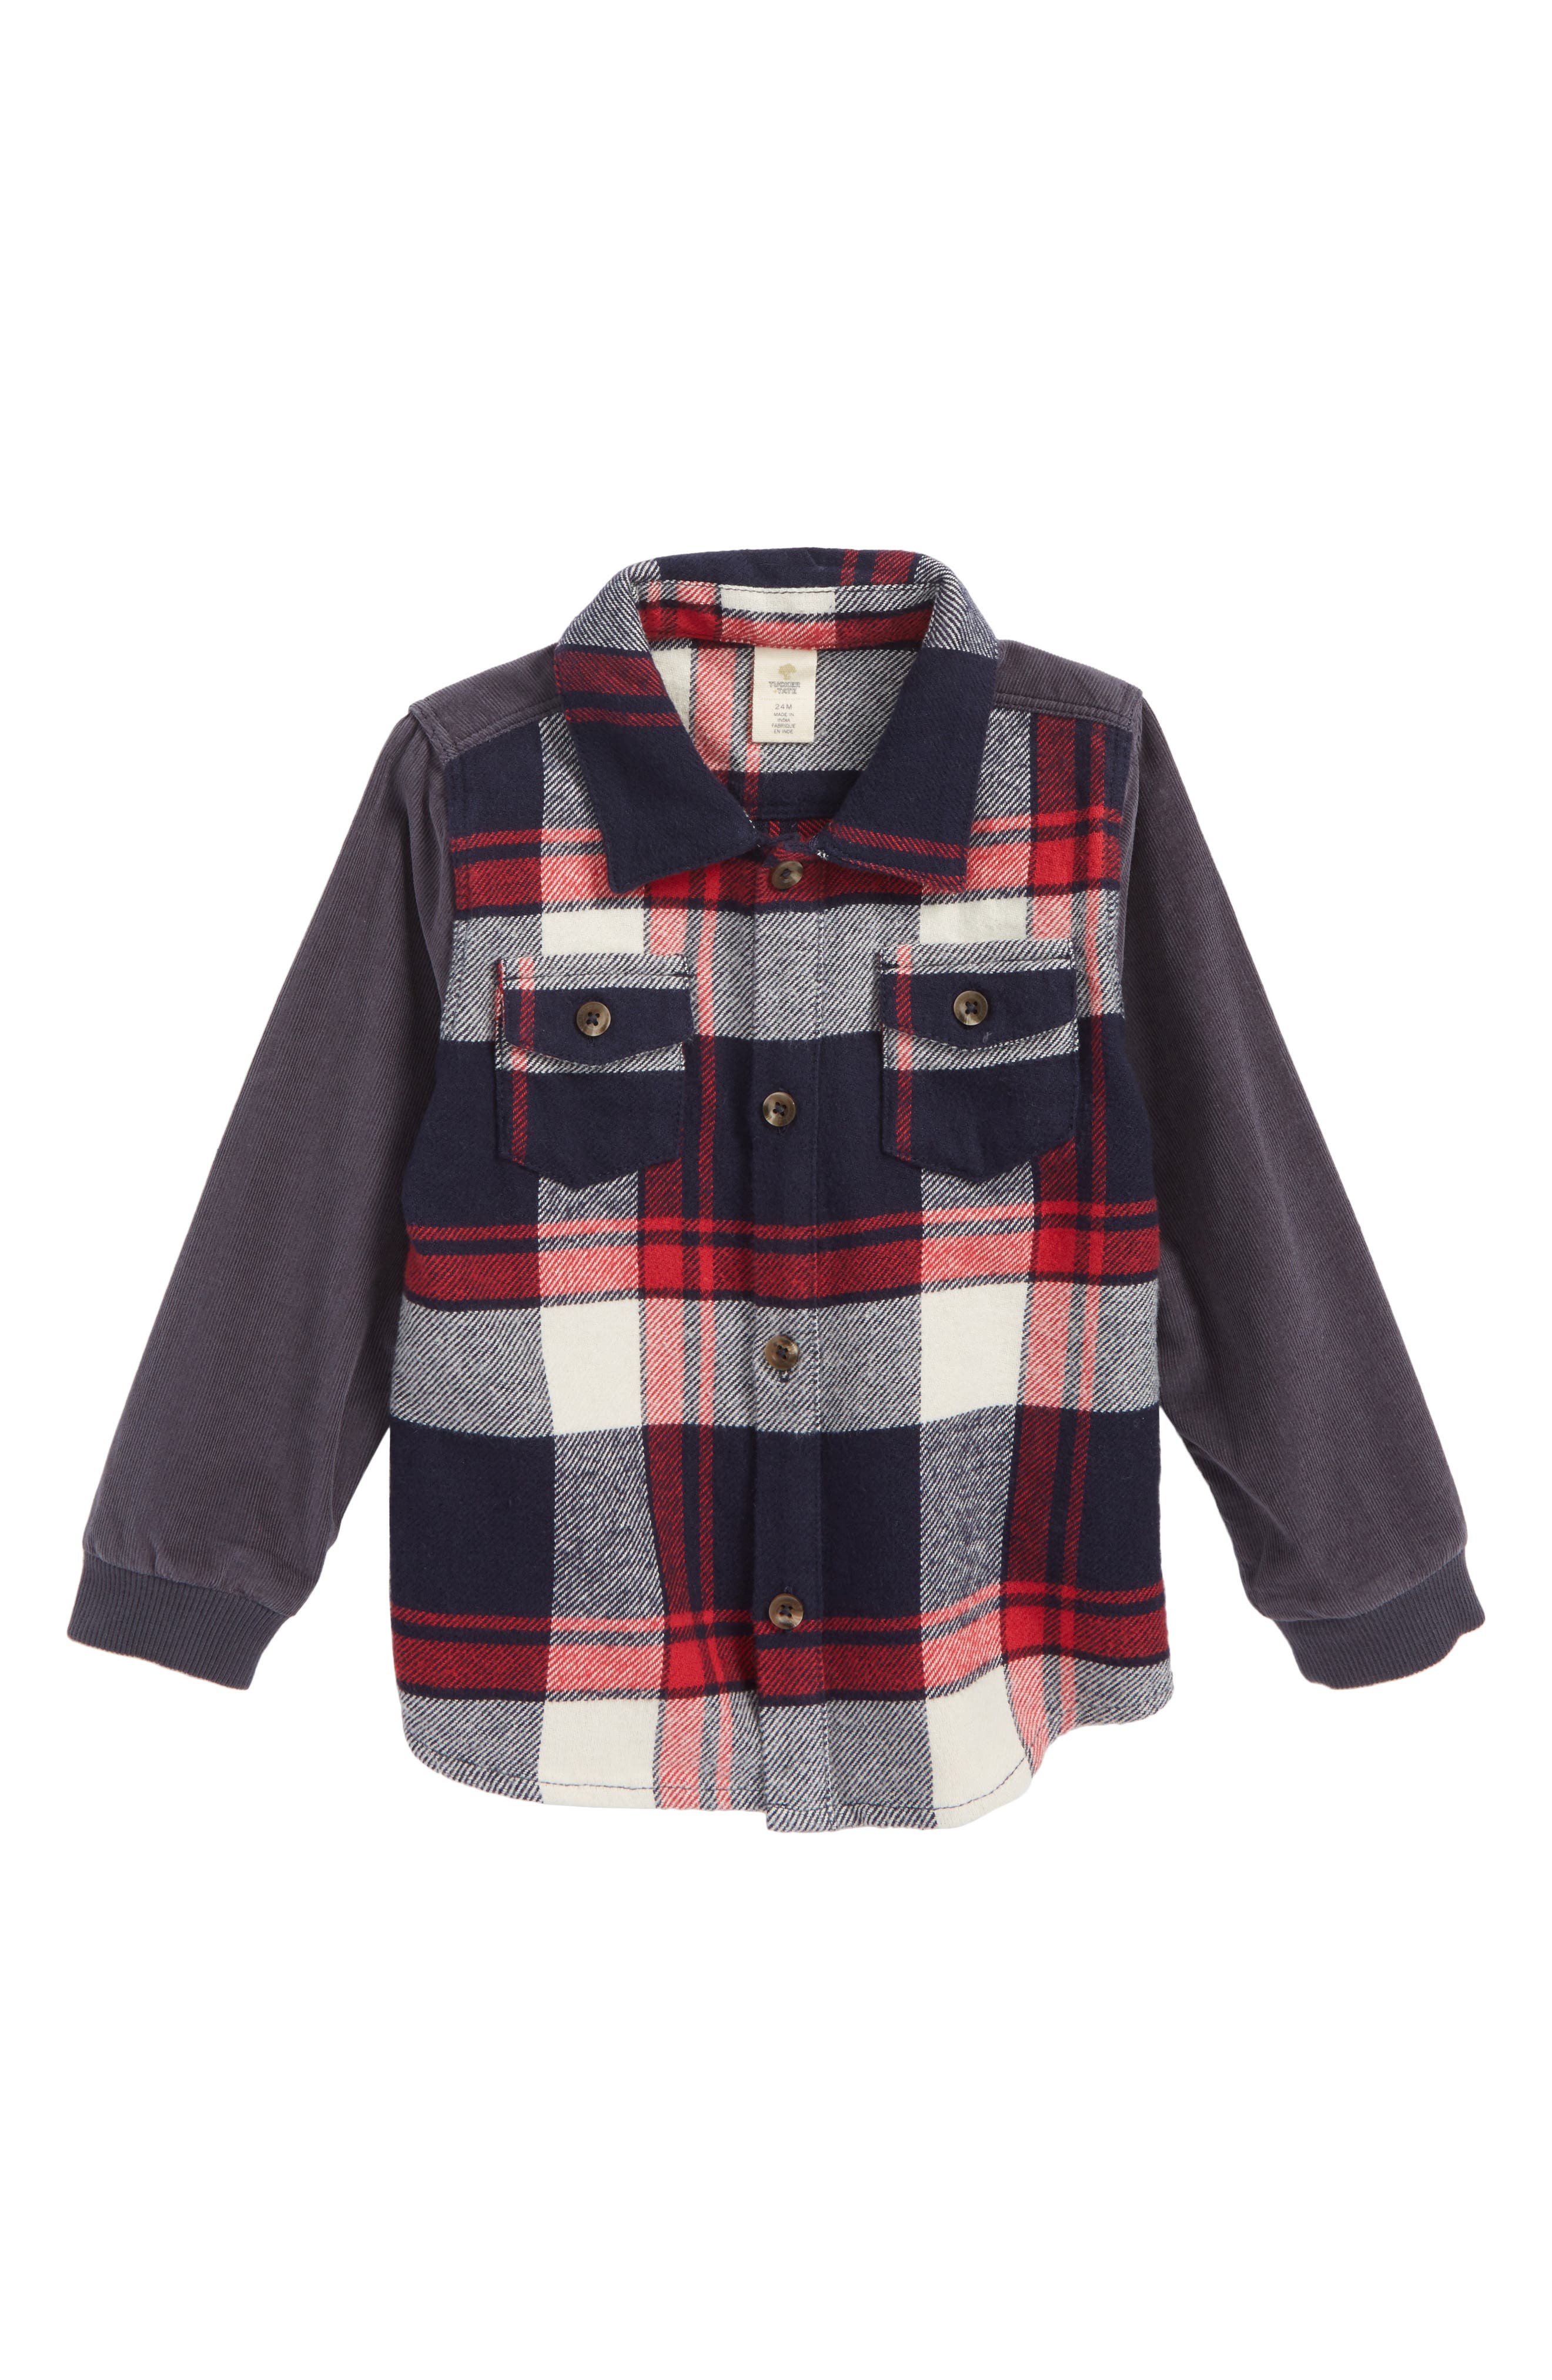 Mixed Media Plaid Shirt,                             Main thumbnail 1, color,                             Red Chili- Navy Plaid